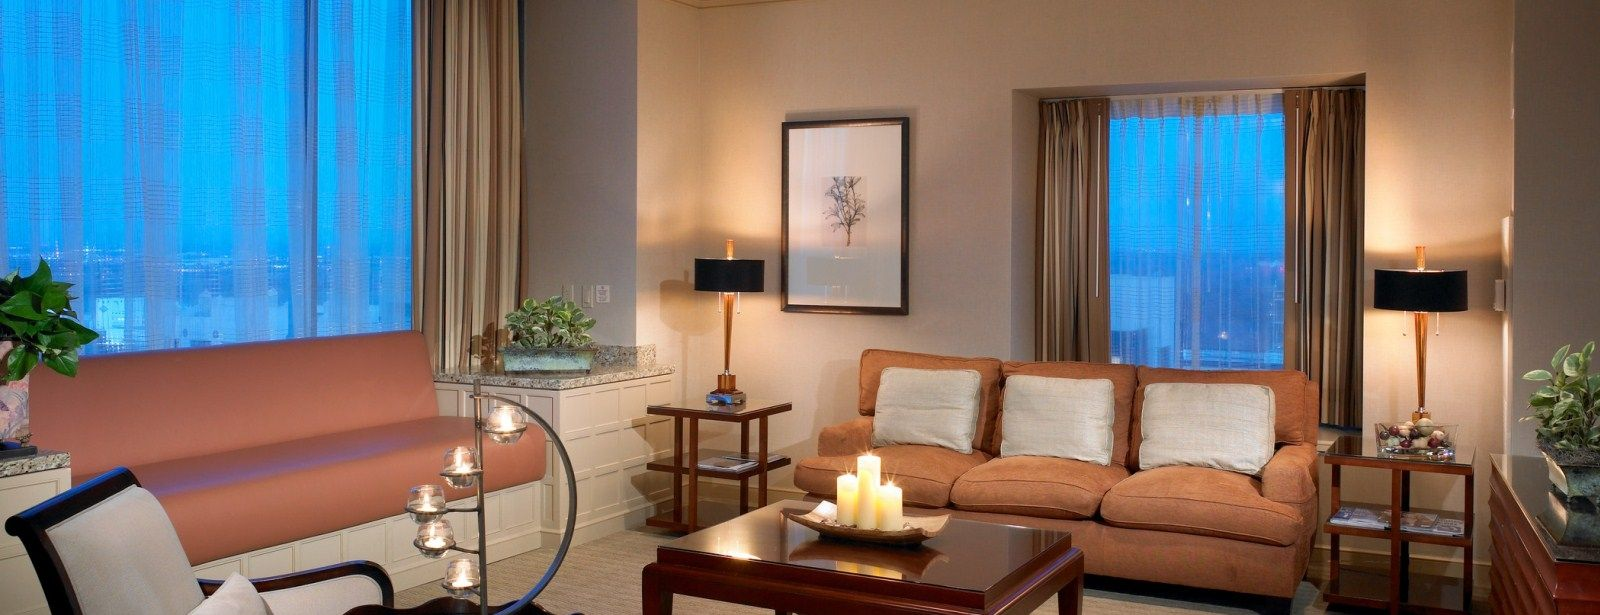 Sheraton Grand Sacramento Hotel - Grand Suite